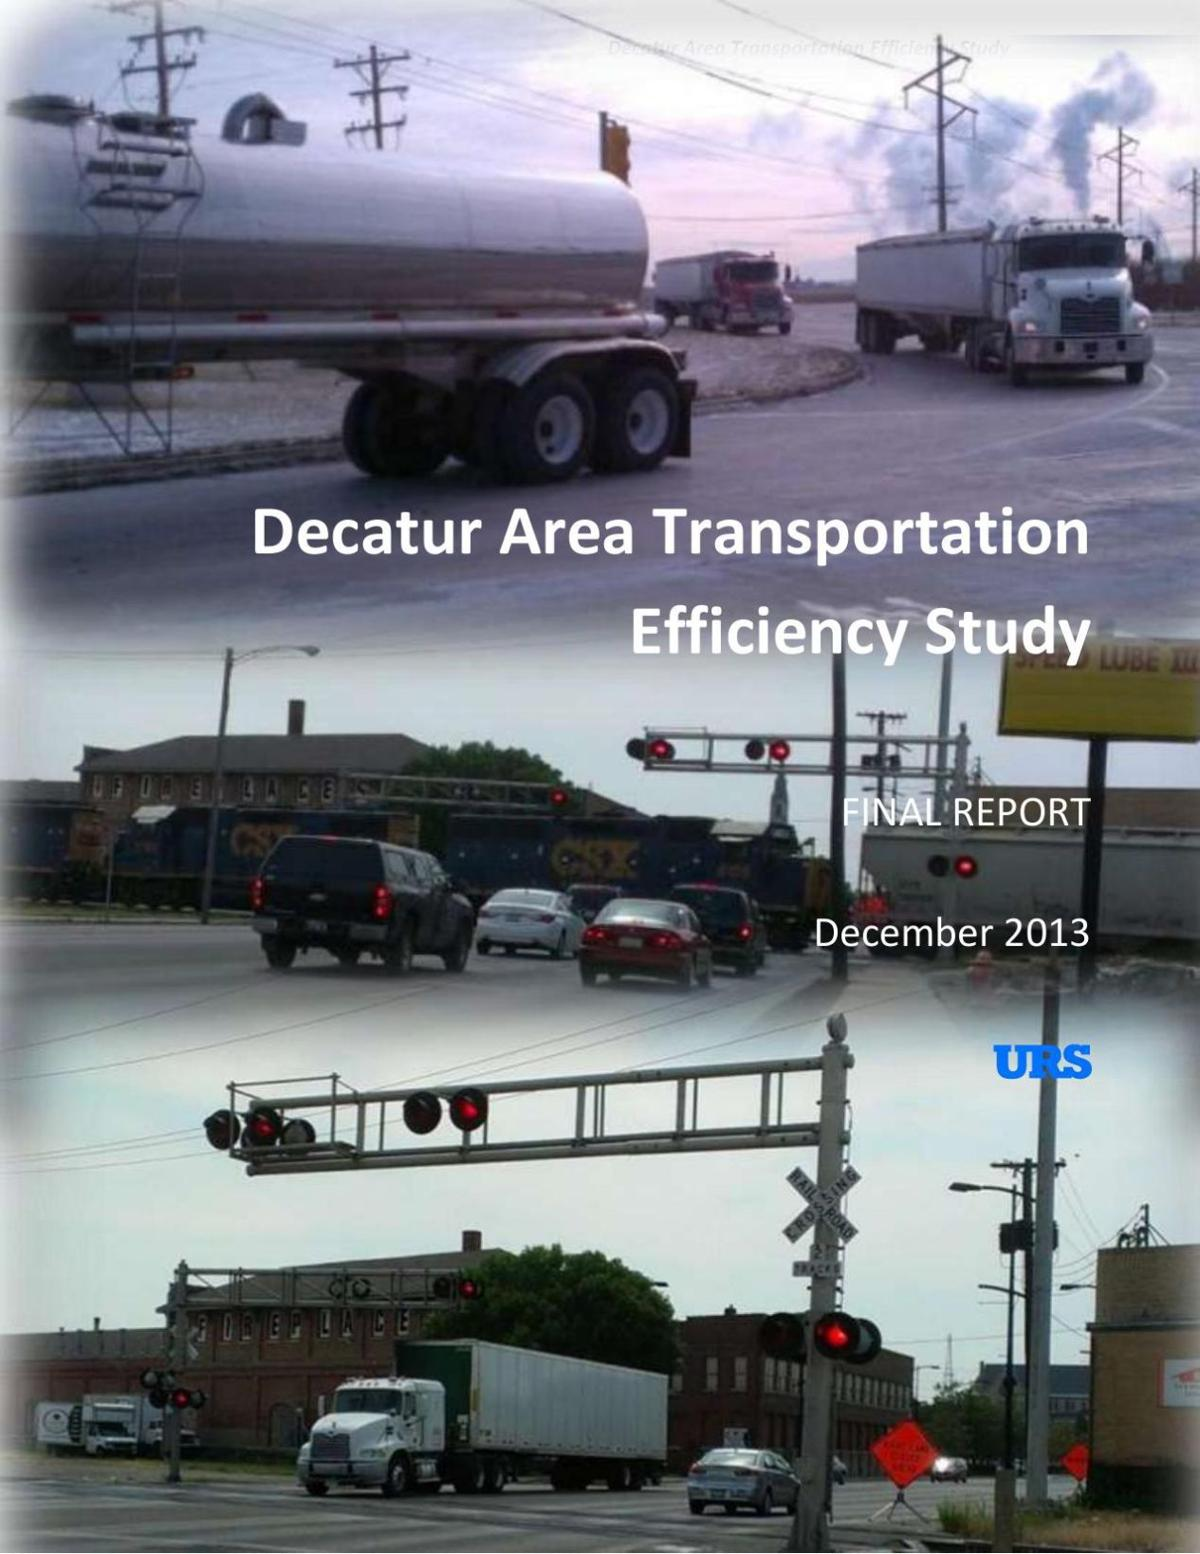 Decatur Area Transportation Efficiency Study